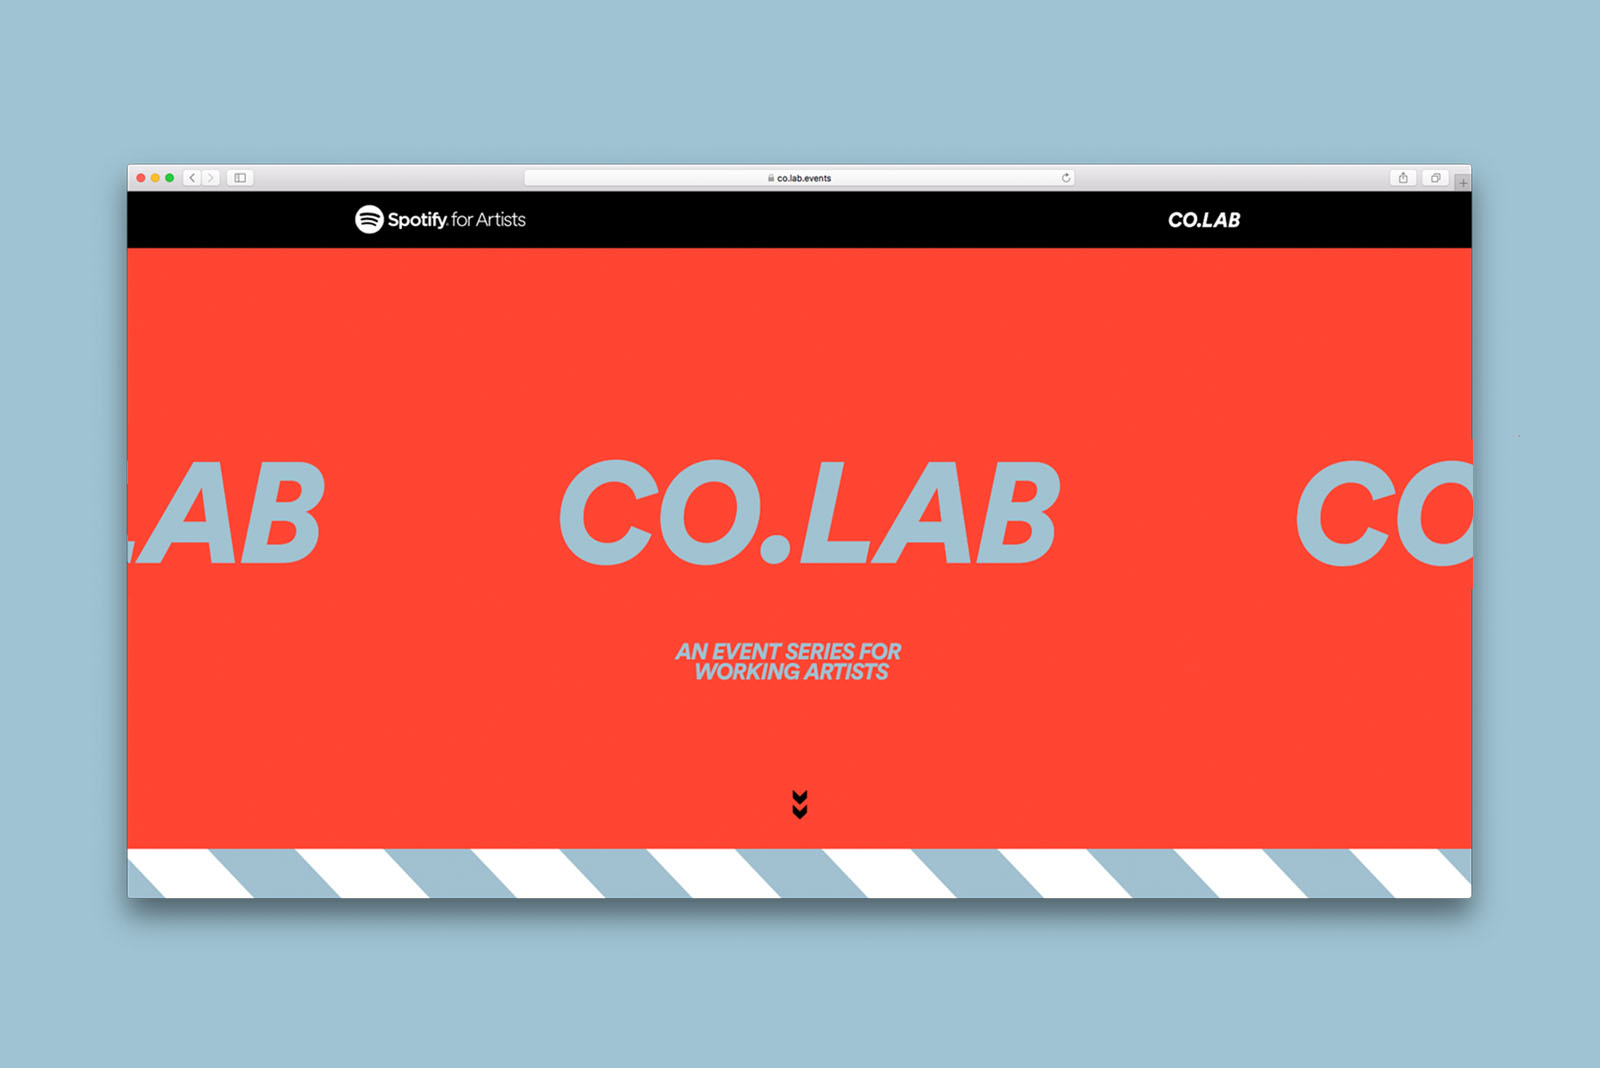 Spotify Co Lab For working musicians to workshop their